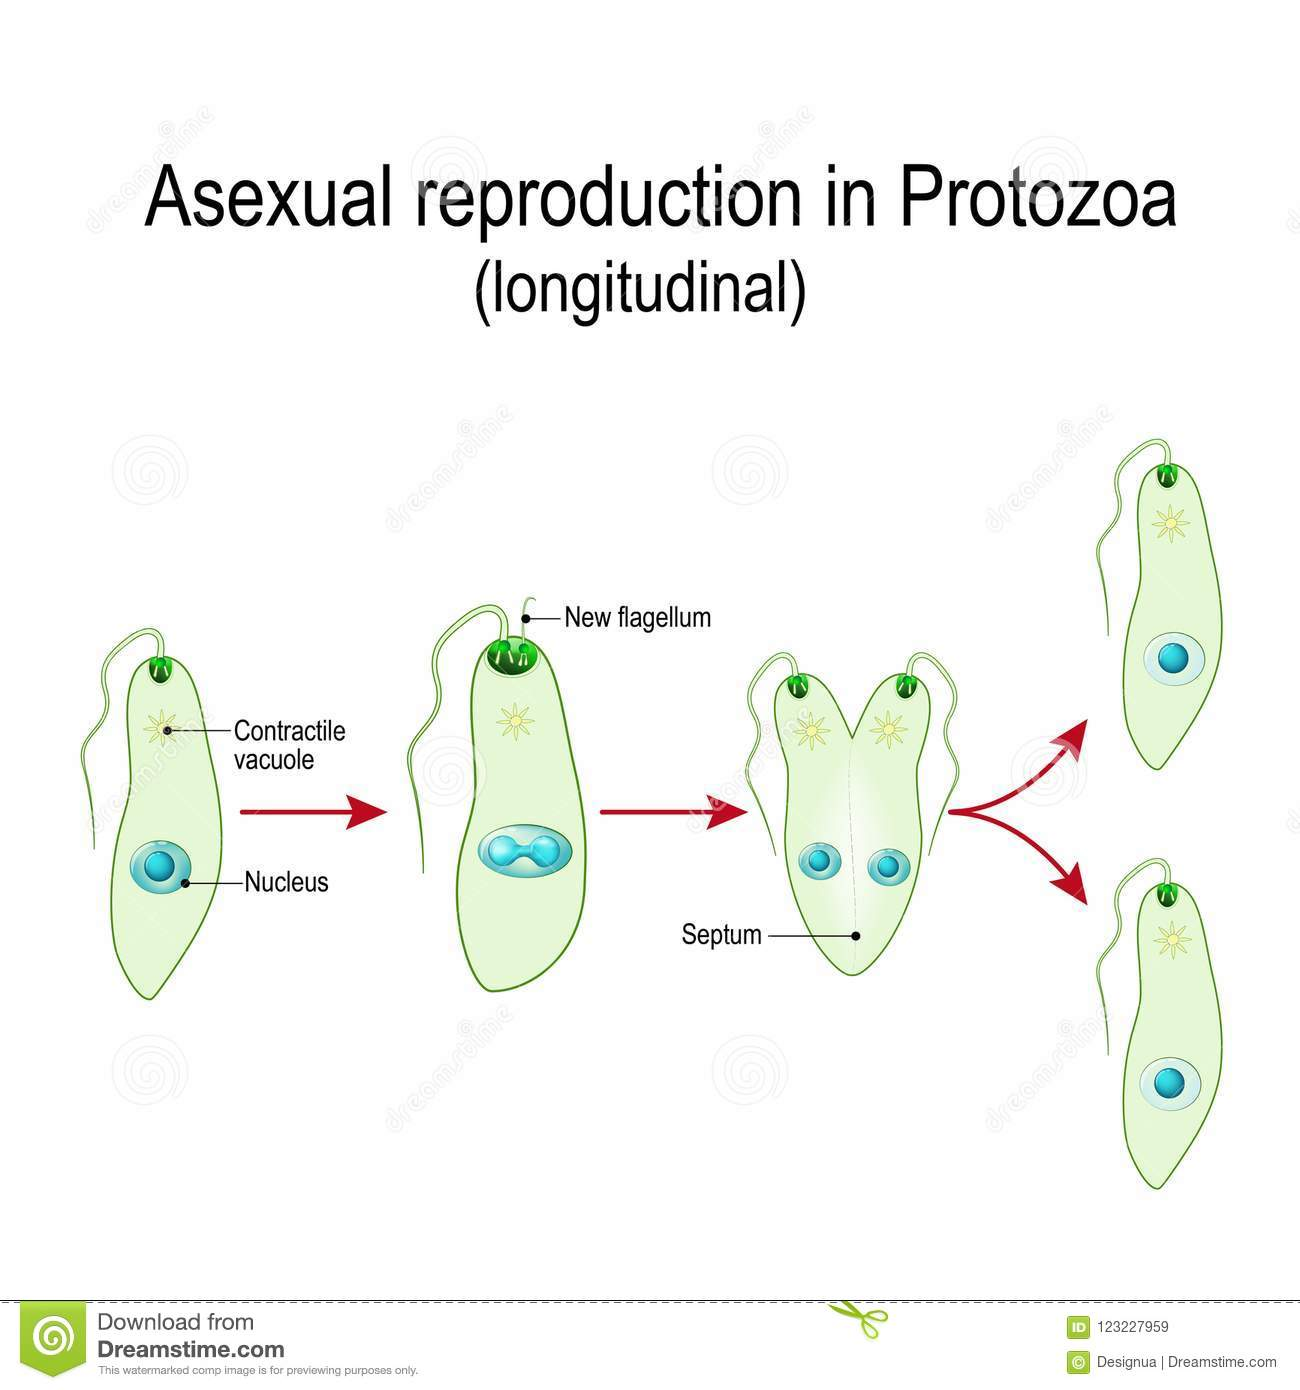 Fision asexual reproduction